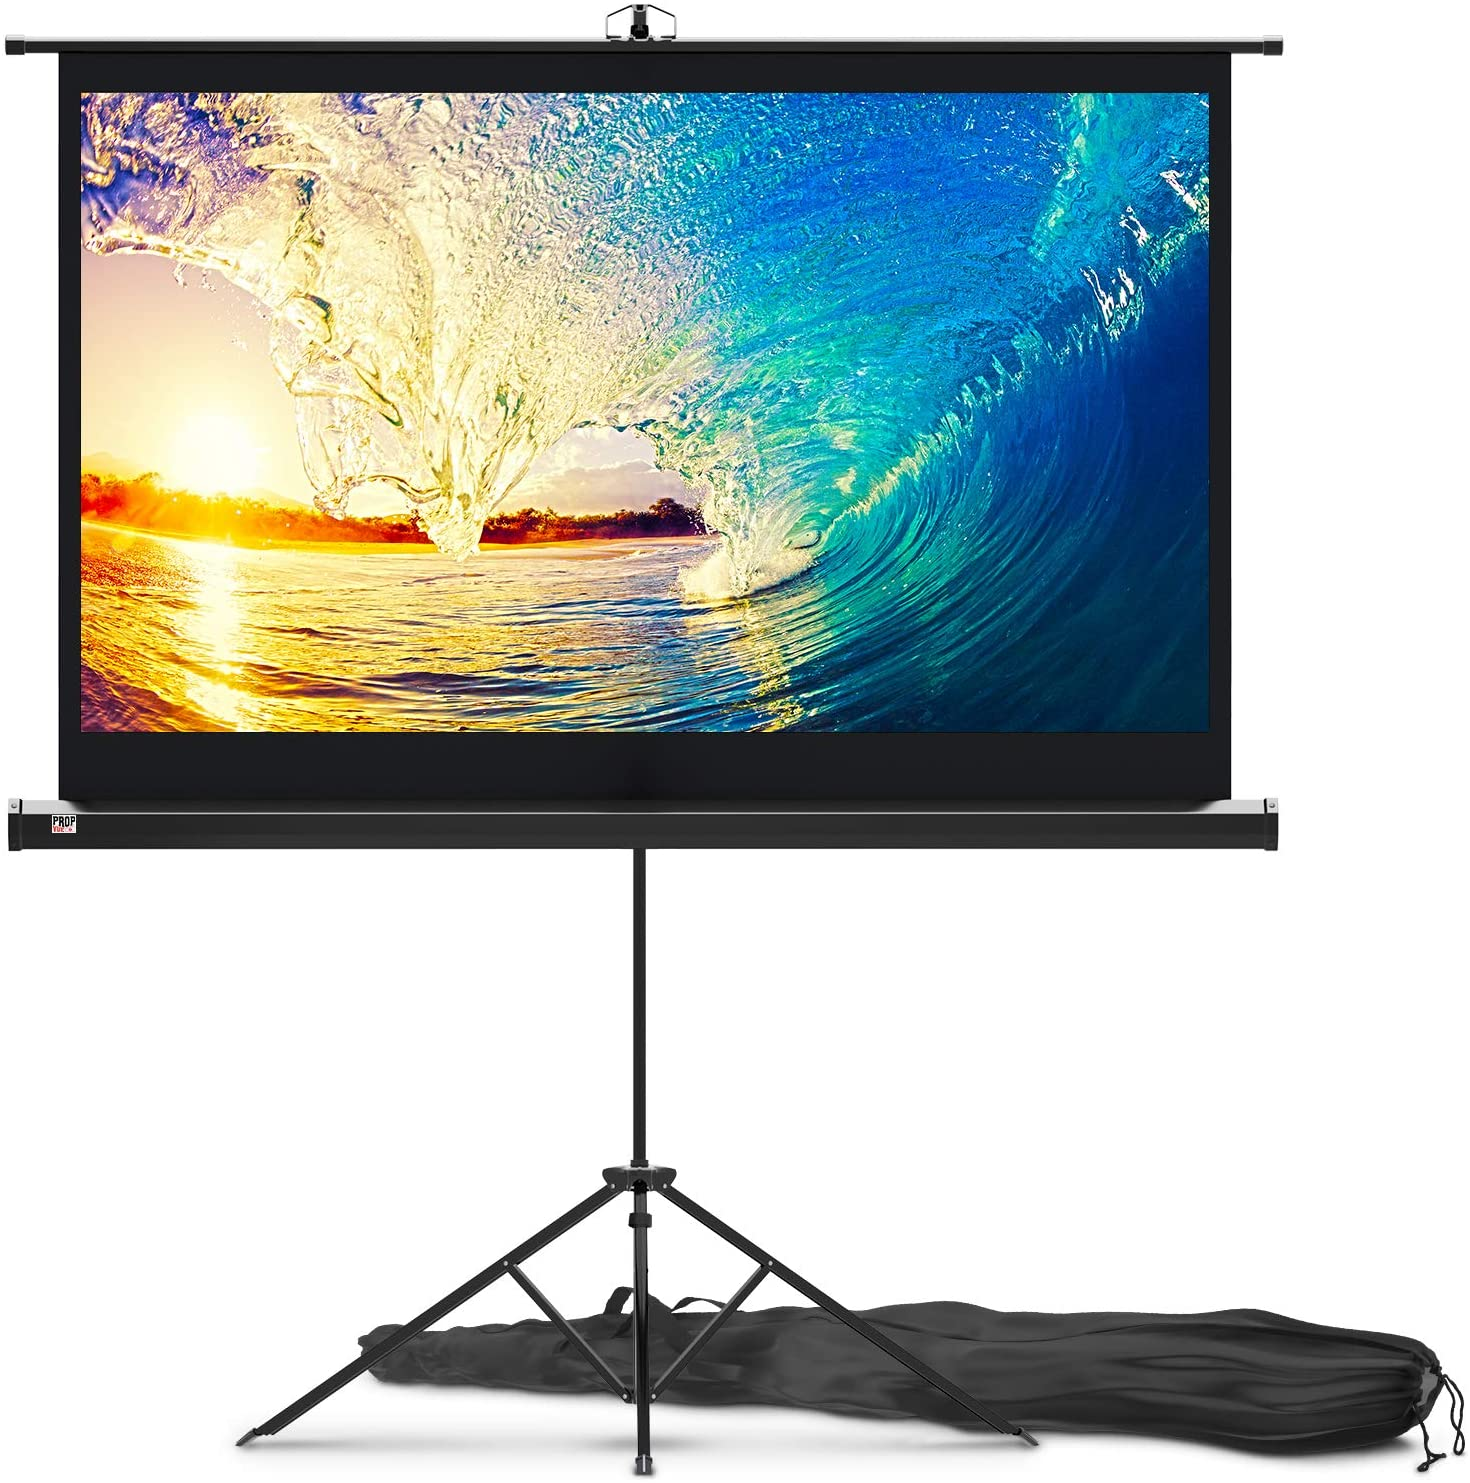 PropVue Projector Screen with Stand 60 inch Indoor and Outdoor Projection Screen for Movie or Office Presentation HD Premium Wrinkle-Free Tripod Screen uk reviews